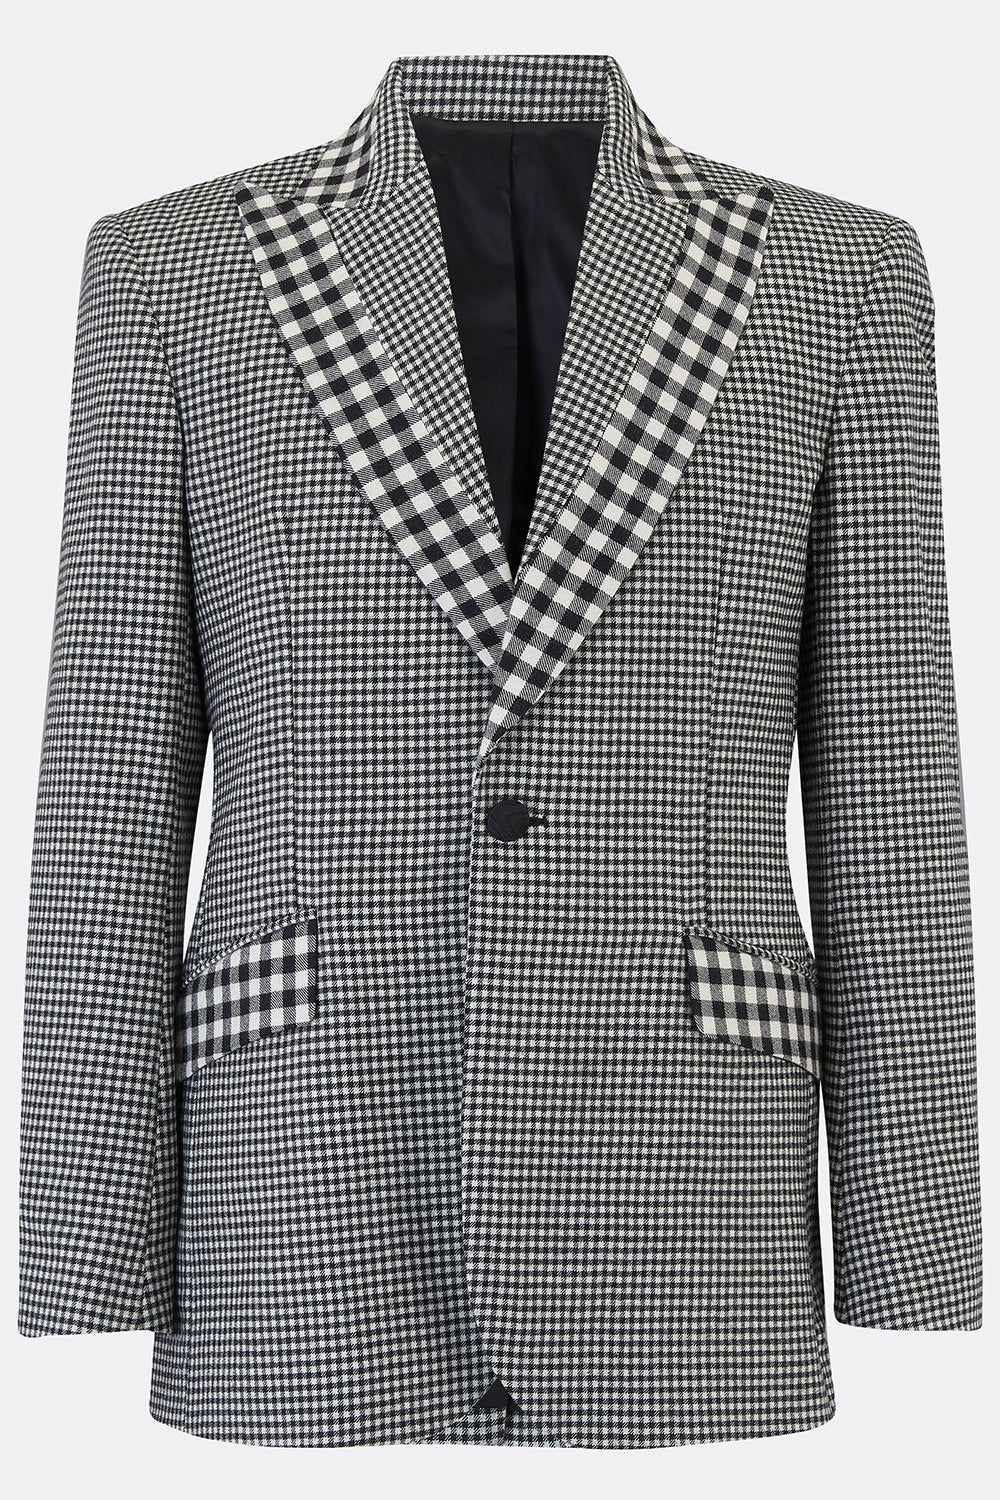 SOHO SPIV JACKET-menswear-A Child Of The Jago